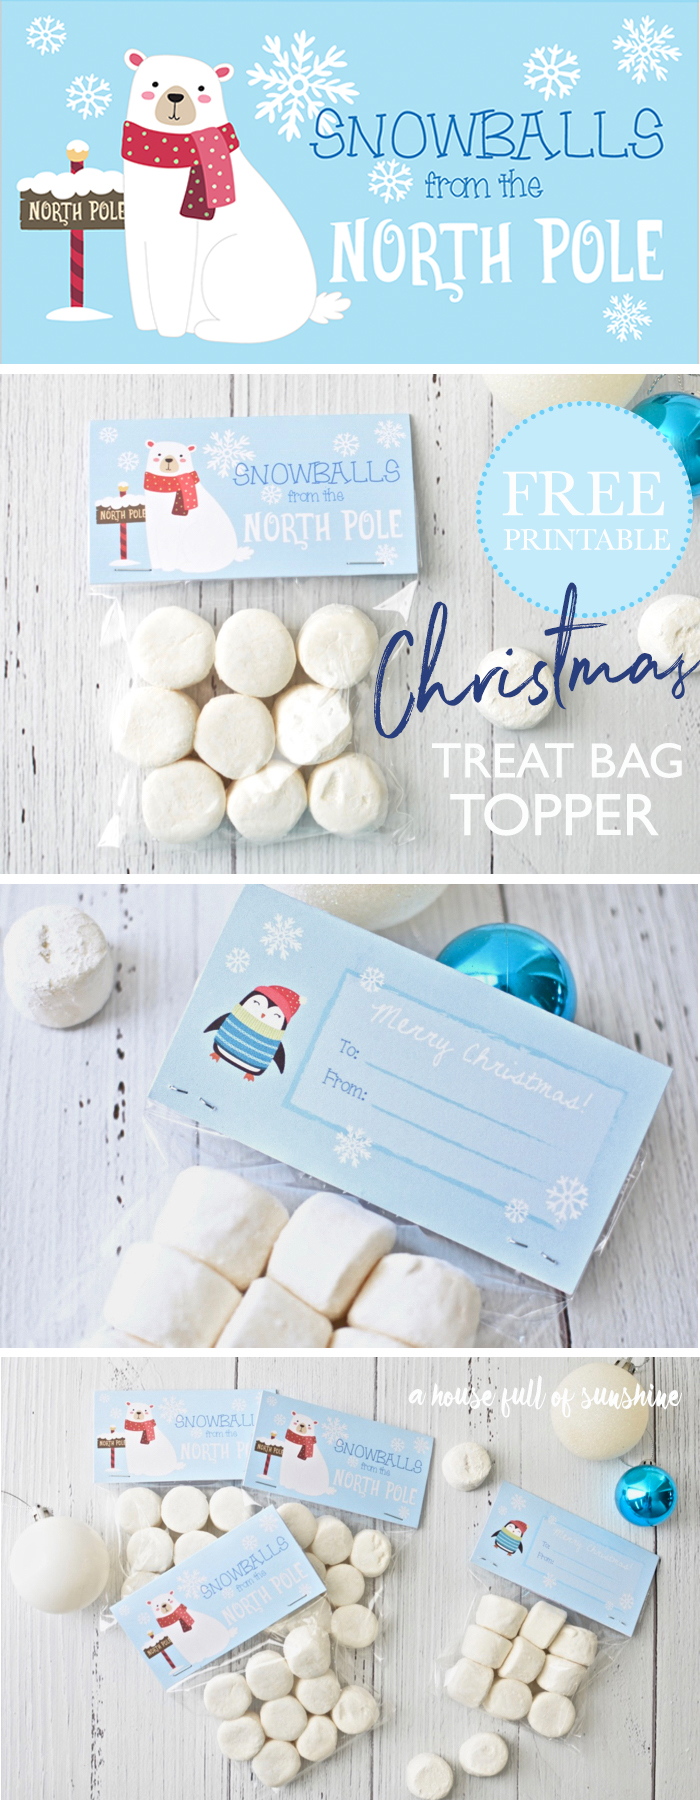 These Christmas treat bag toppers make a super cute novelty gift for the kids' school friends! Just fill a bag with white marshmallows and attach the FREE printable. Snowballs from Santa's place are the best gift EVER! 